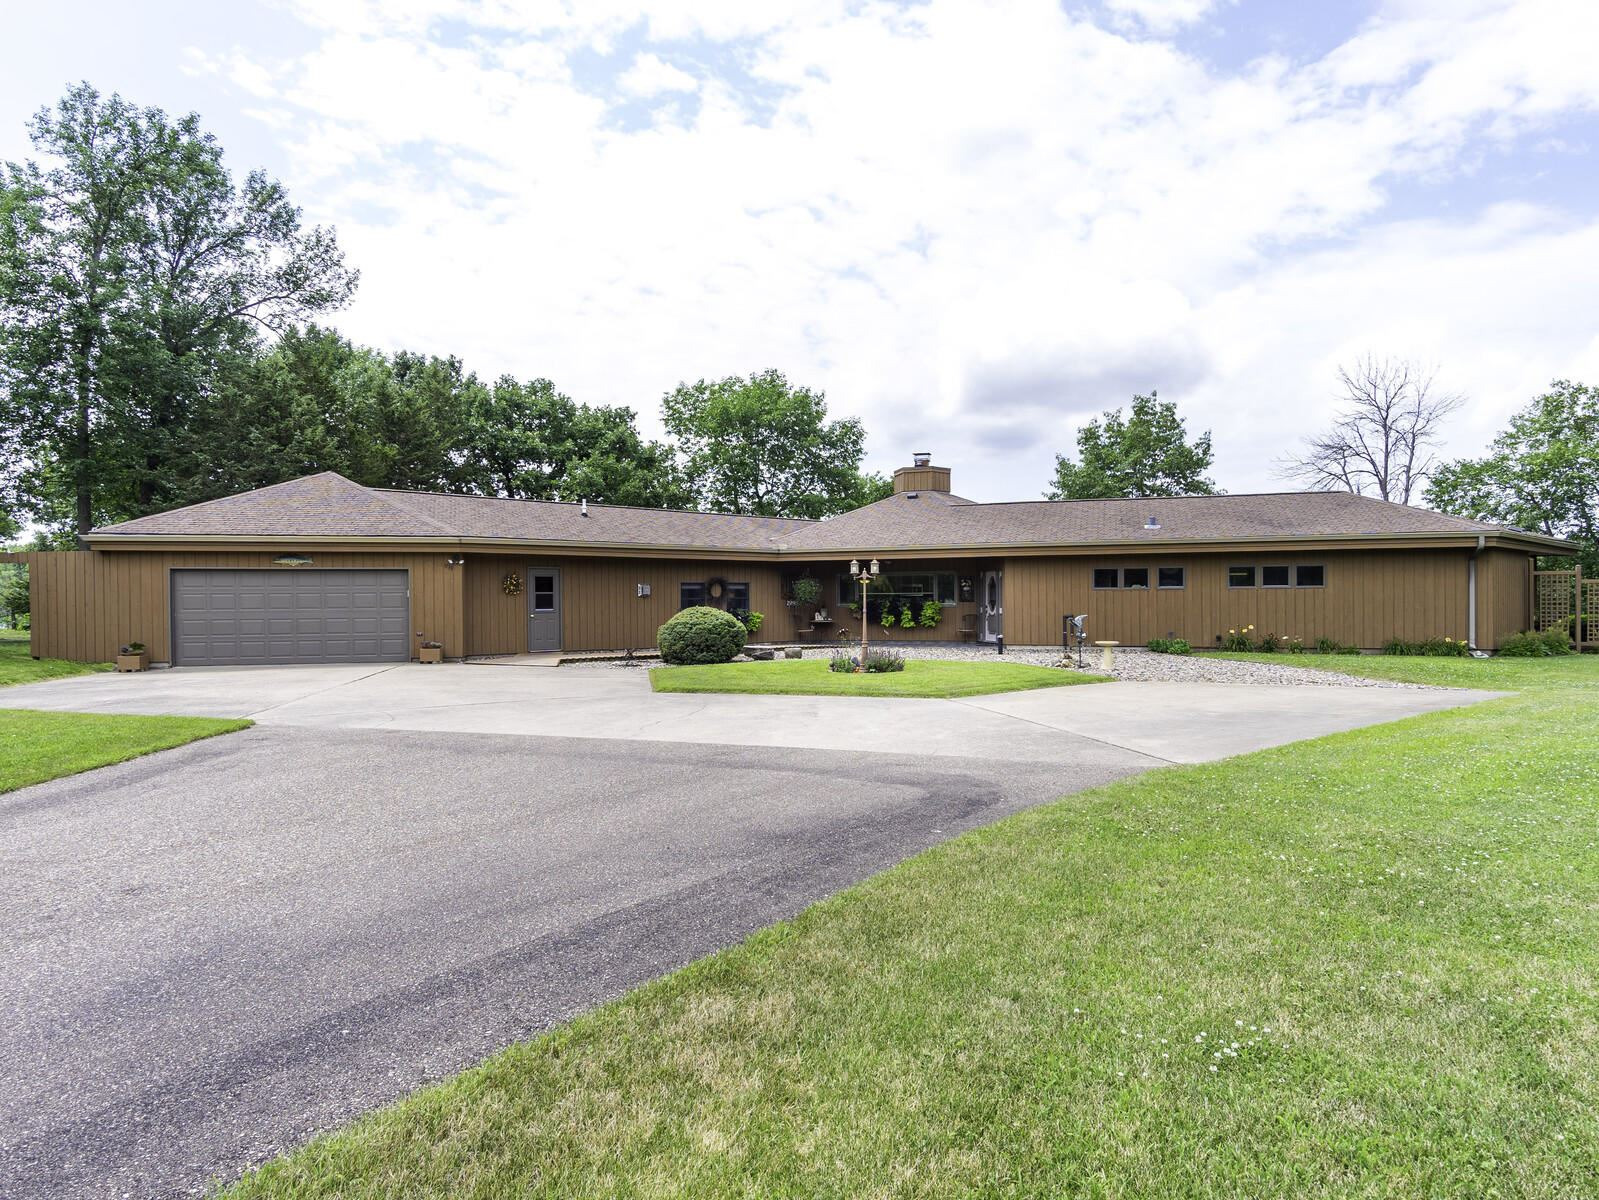 W1733 Indian Point RD, Belvidere, WI 54622 - MLS#: 1697944